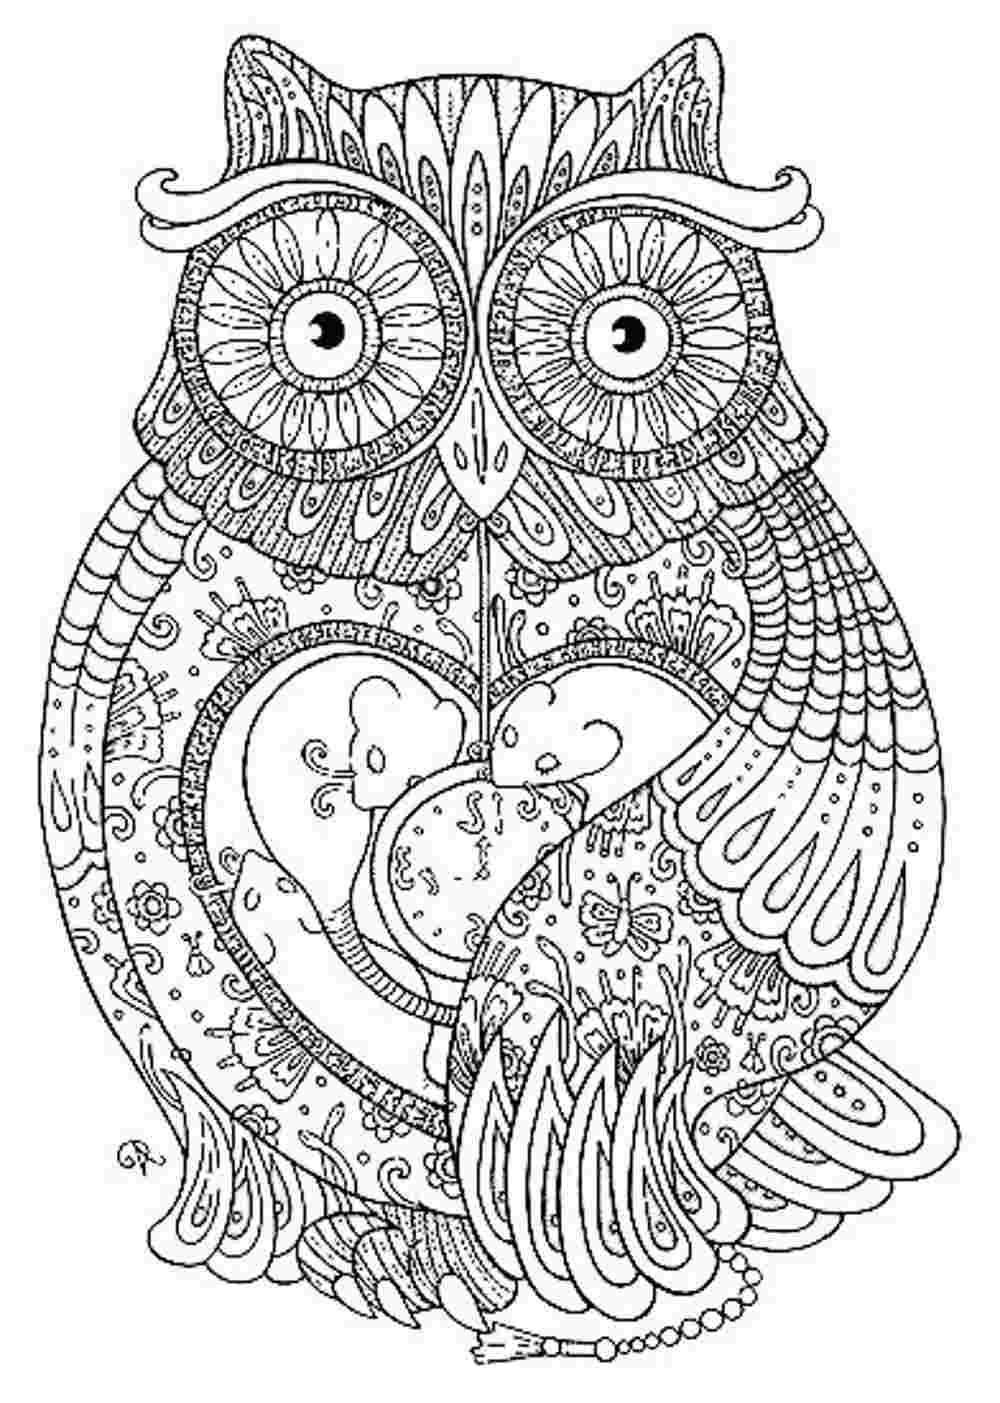 Animal mandala coloring pages to download and print for free | printable mandala coloring pages animals